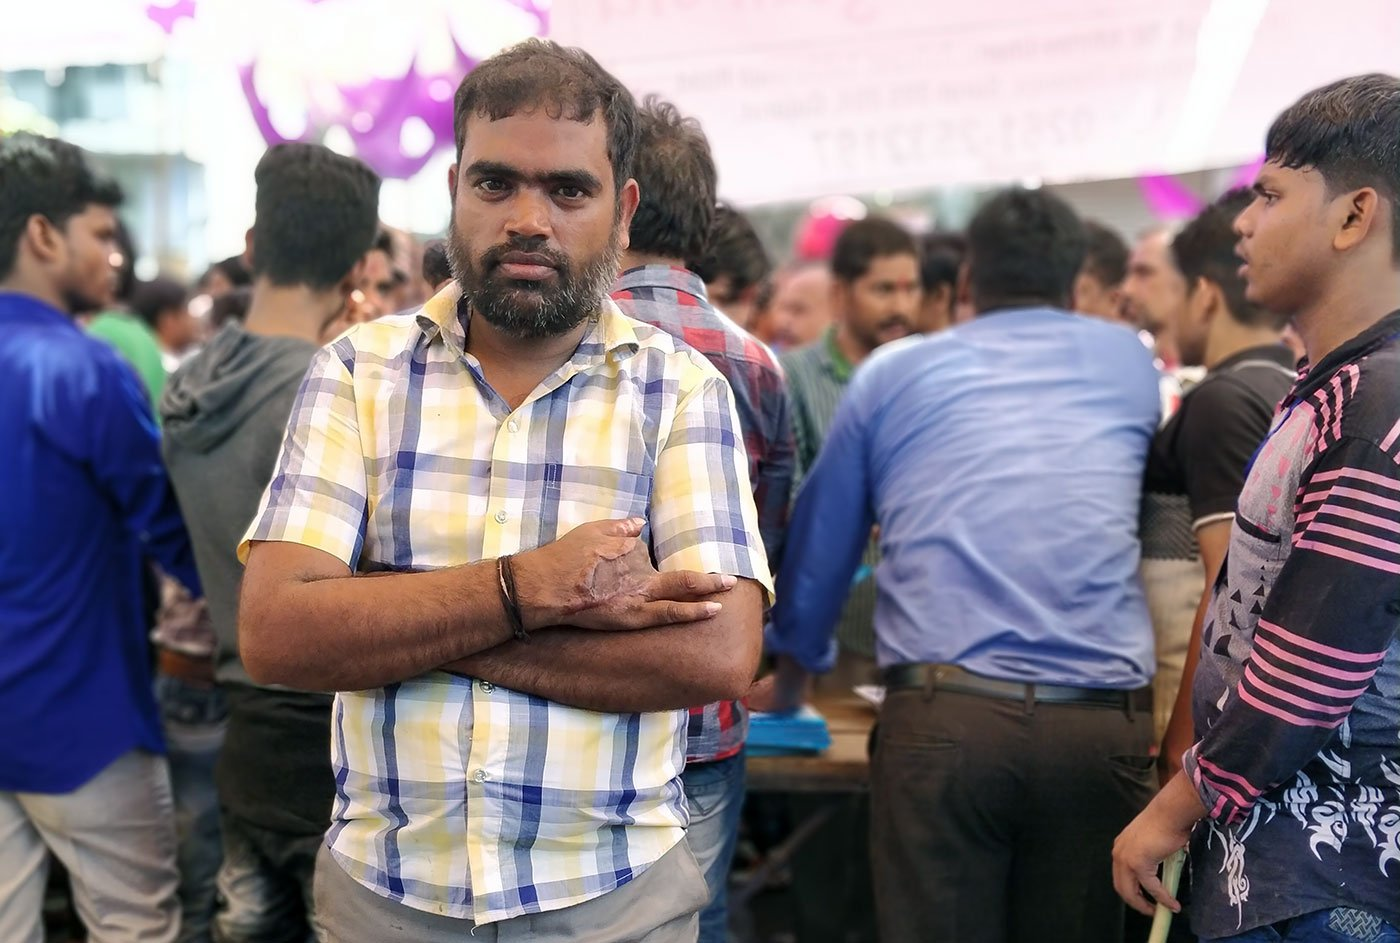 Rushikesh Rout, 38, a former powerloom unit worker lost three fingers in a freak accident in June last year. He now works as a security guard, carrying with him little hope to be compensated for his lost fingers.